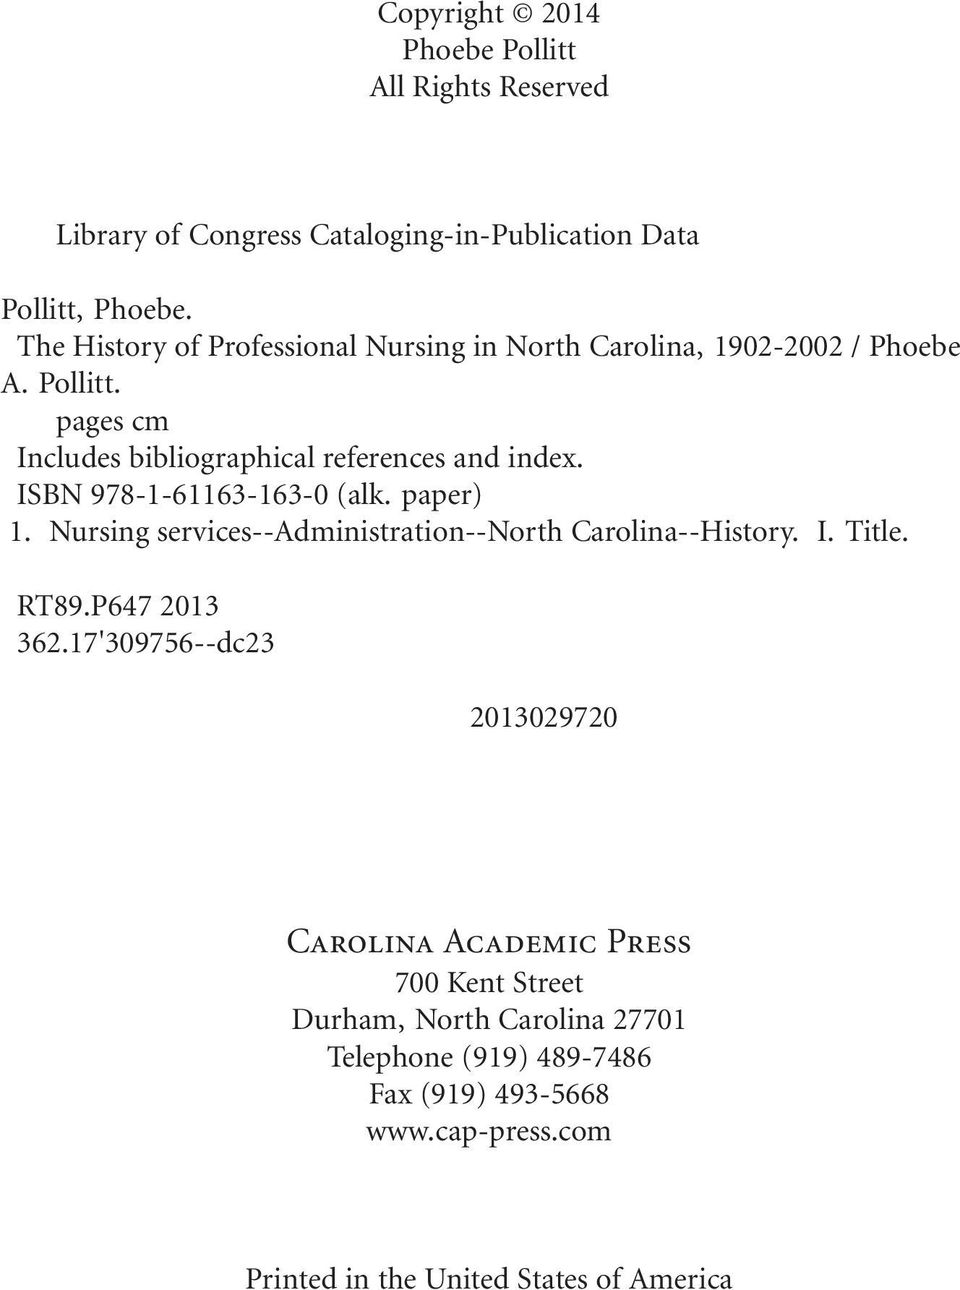 ISBN 978-1-61163-163-0 (alk. paper) 1. Nursing services--administration--north Carolina--History. I. Title. RT89.P647 2013 362.